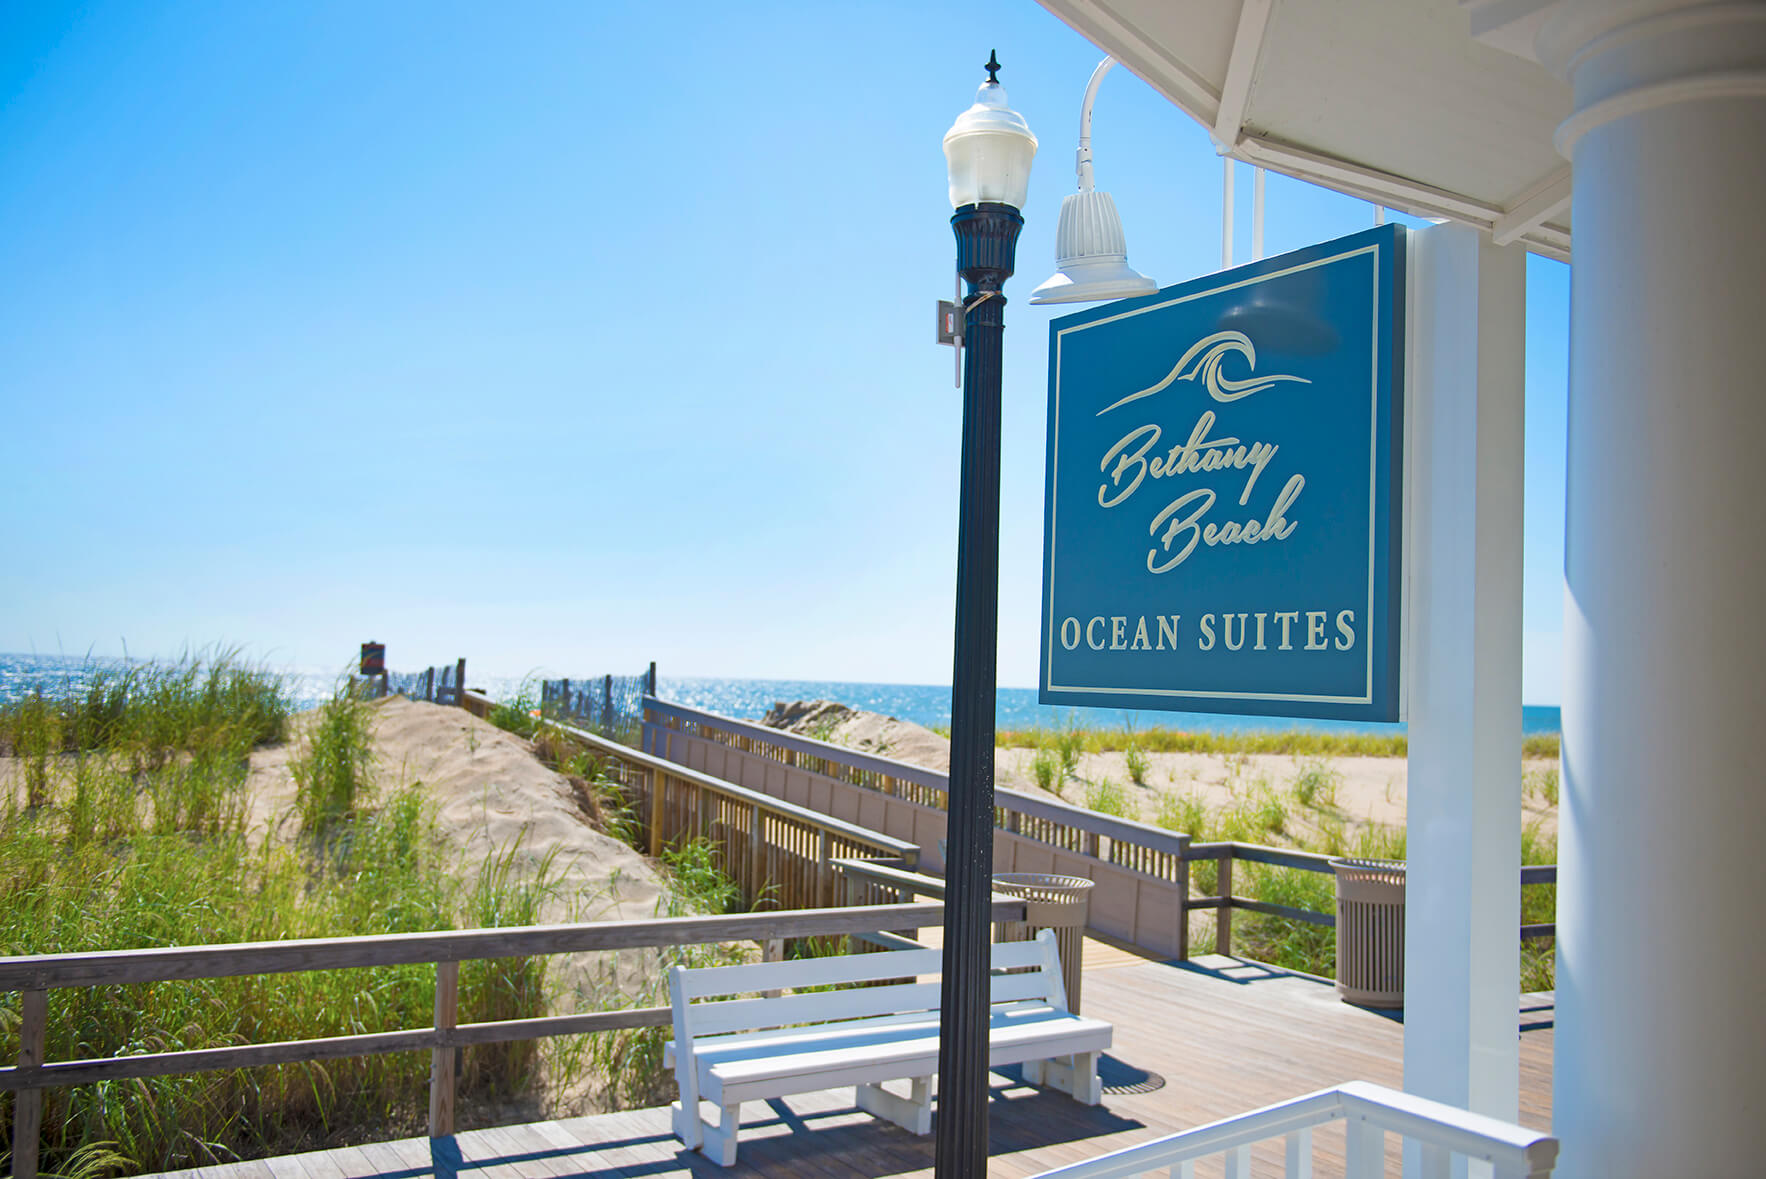 bethany beach ocean suites sign